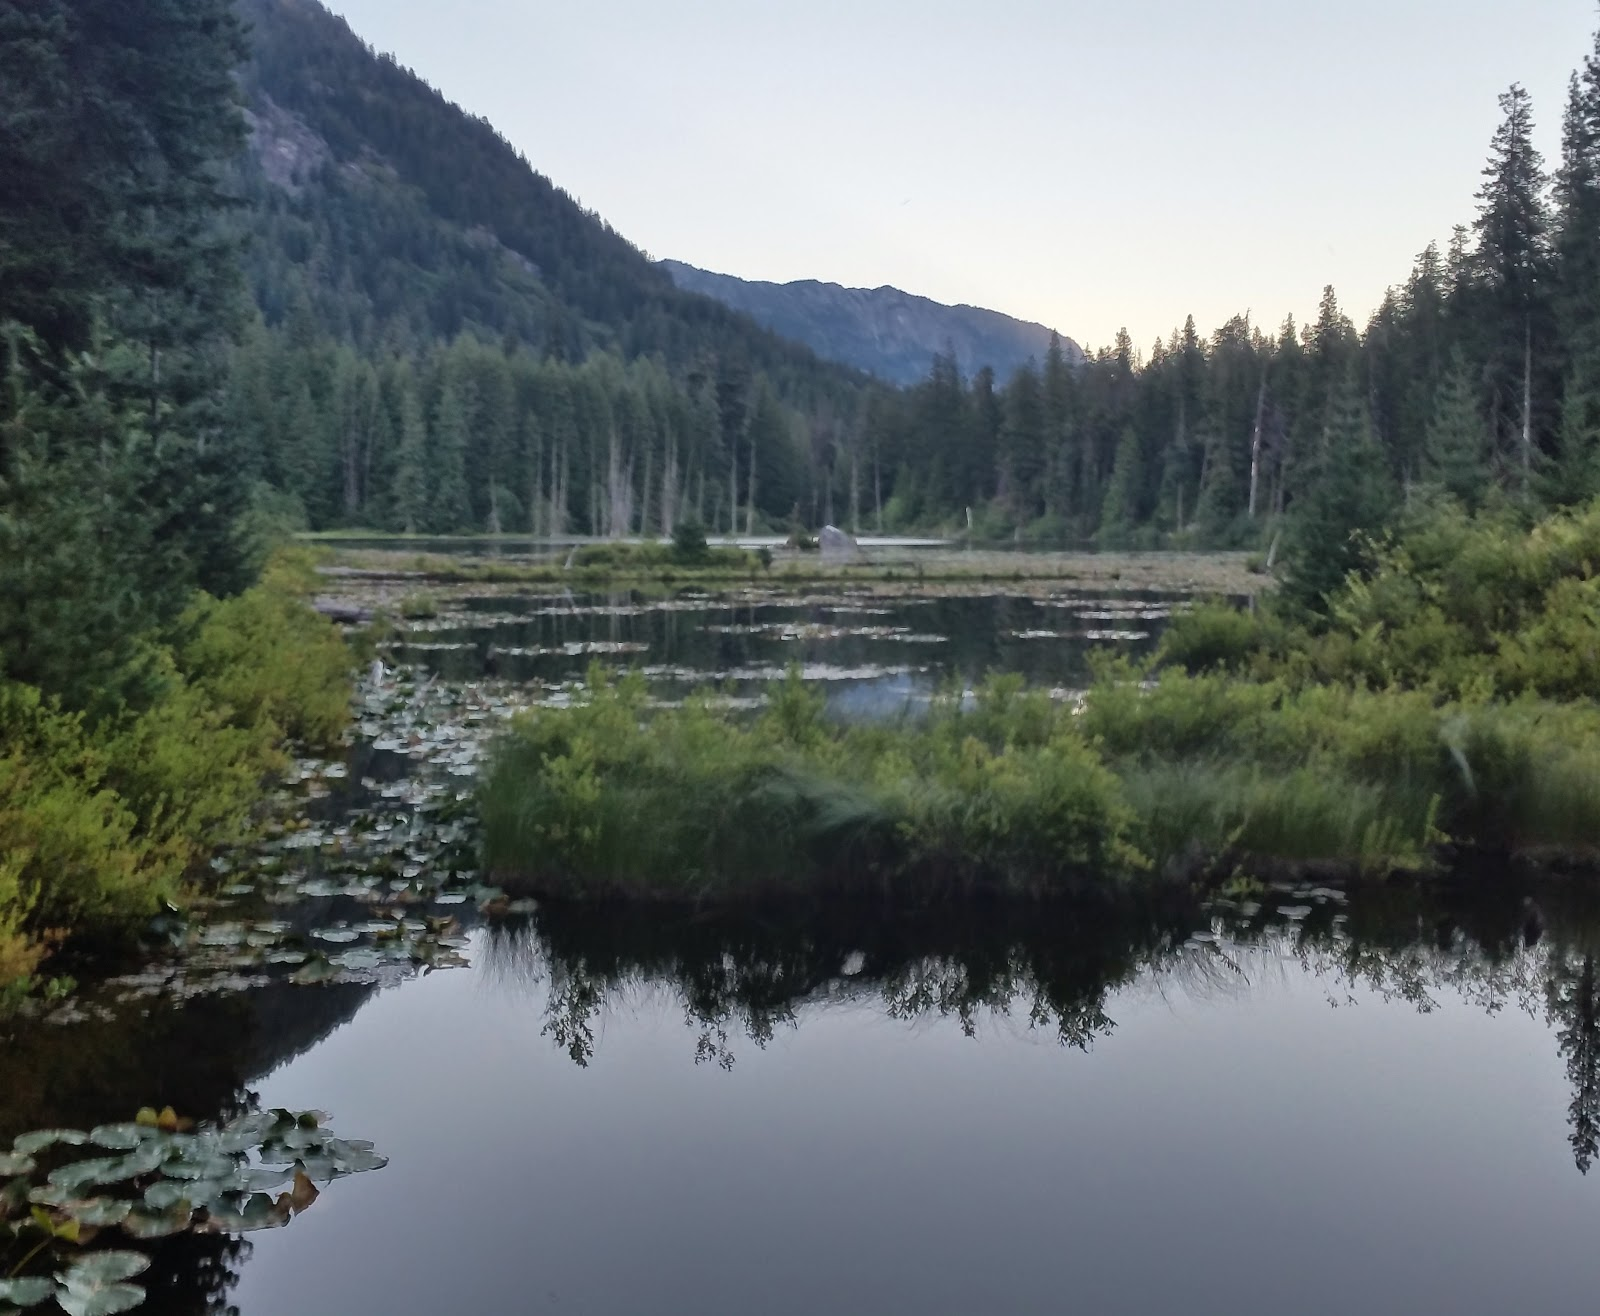 A beautiful image of Placid Lake on the PCT